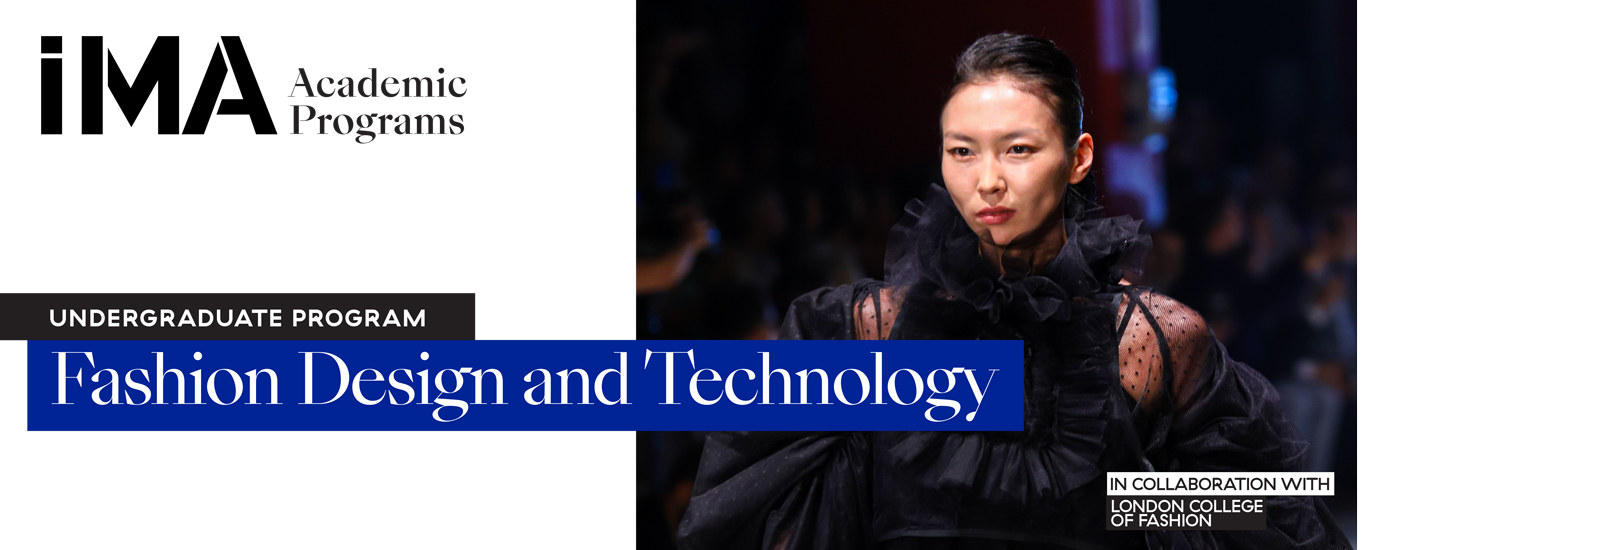 Fashion Design and Technology Undergraduate Program